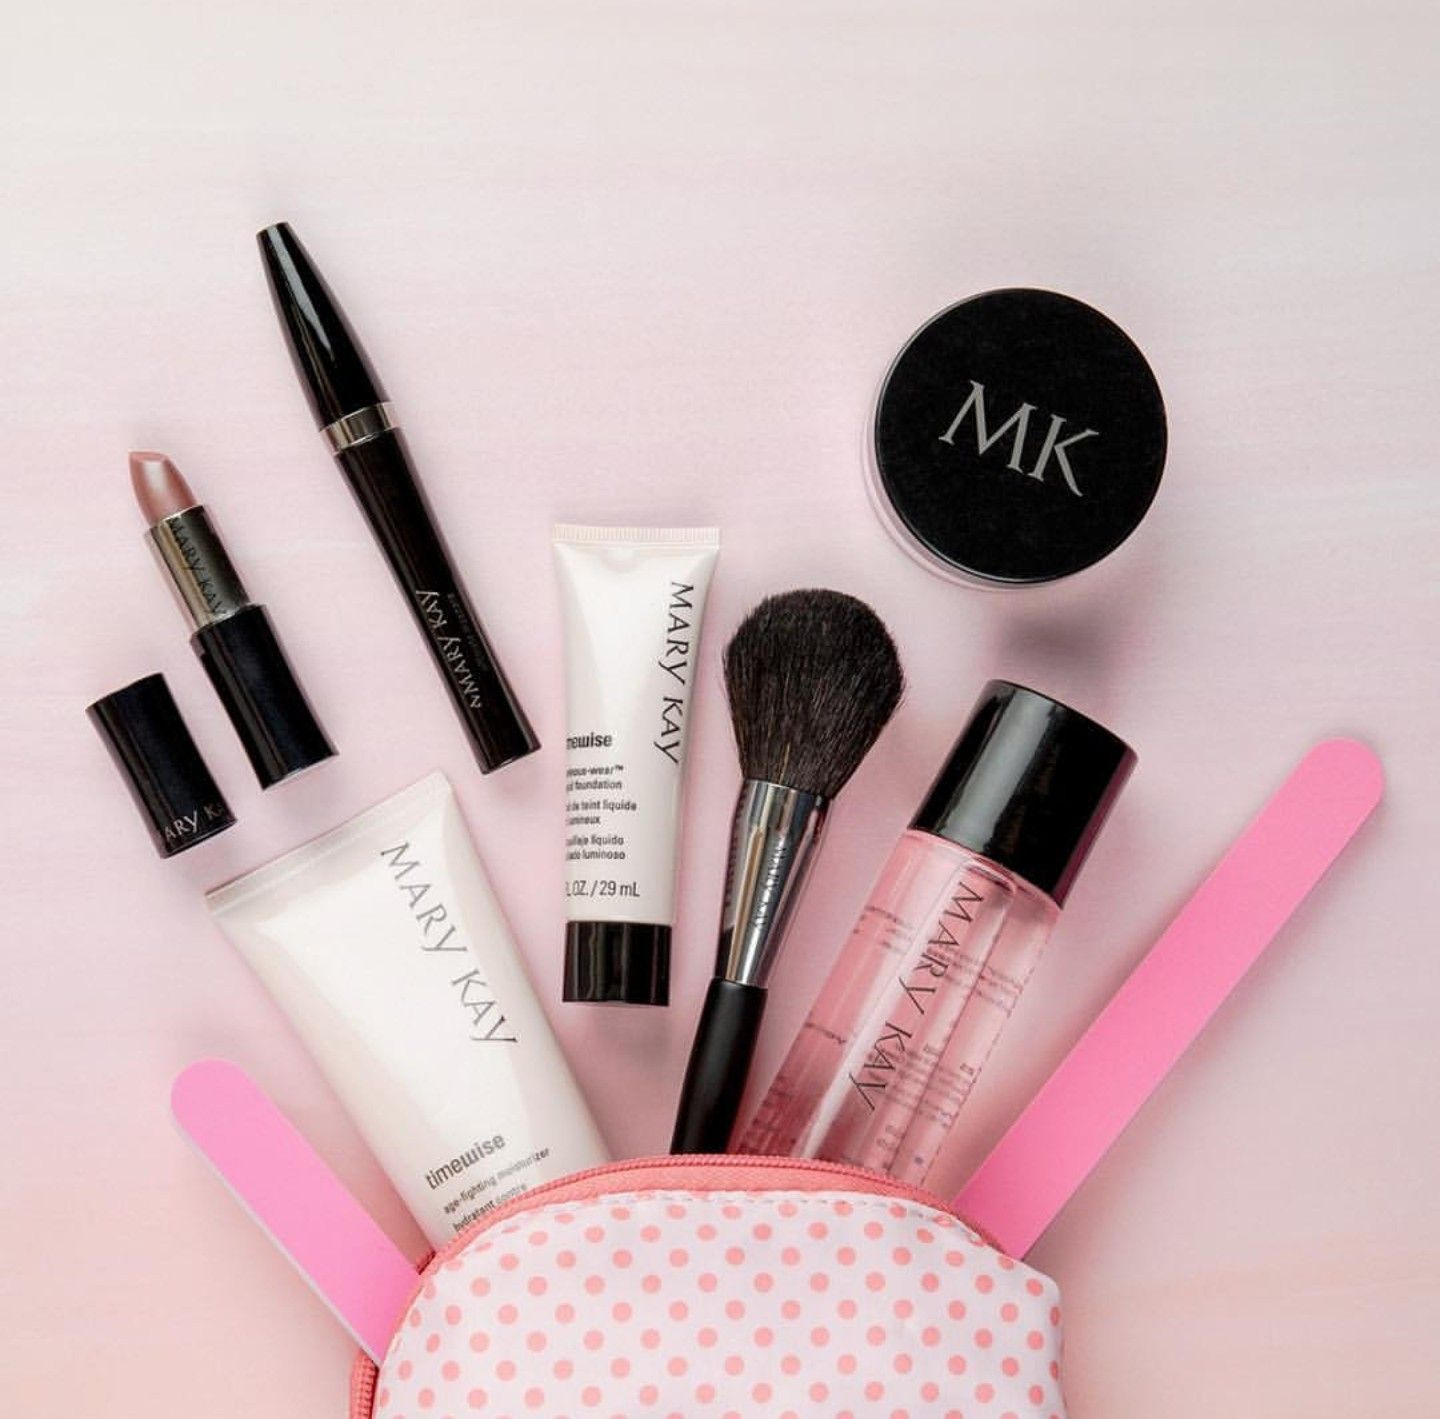 Mary Kay Ash Products